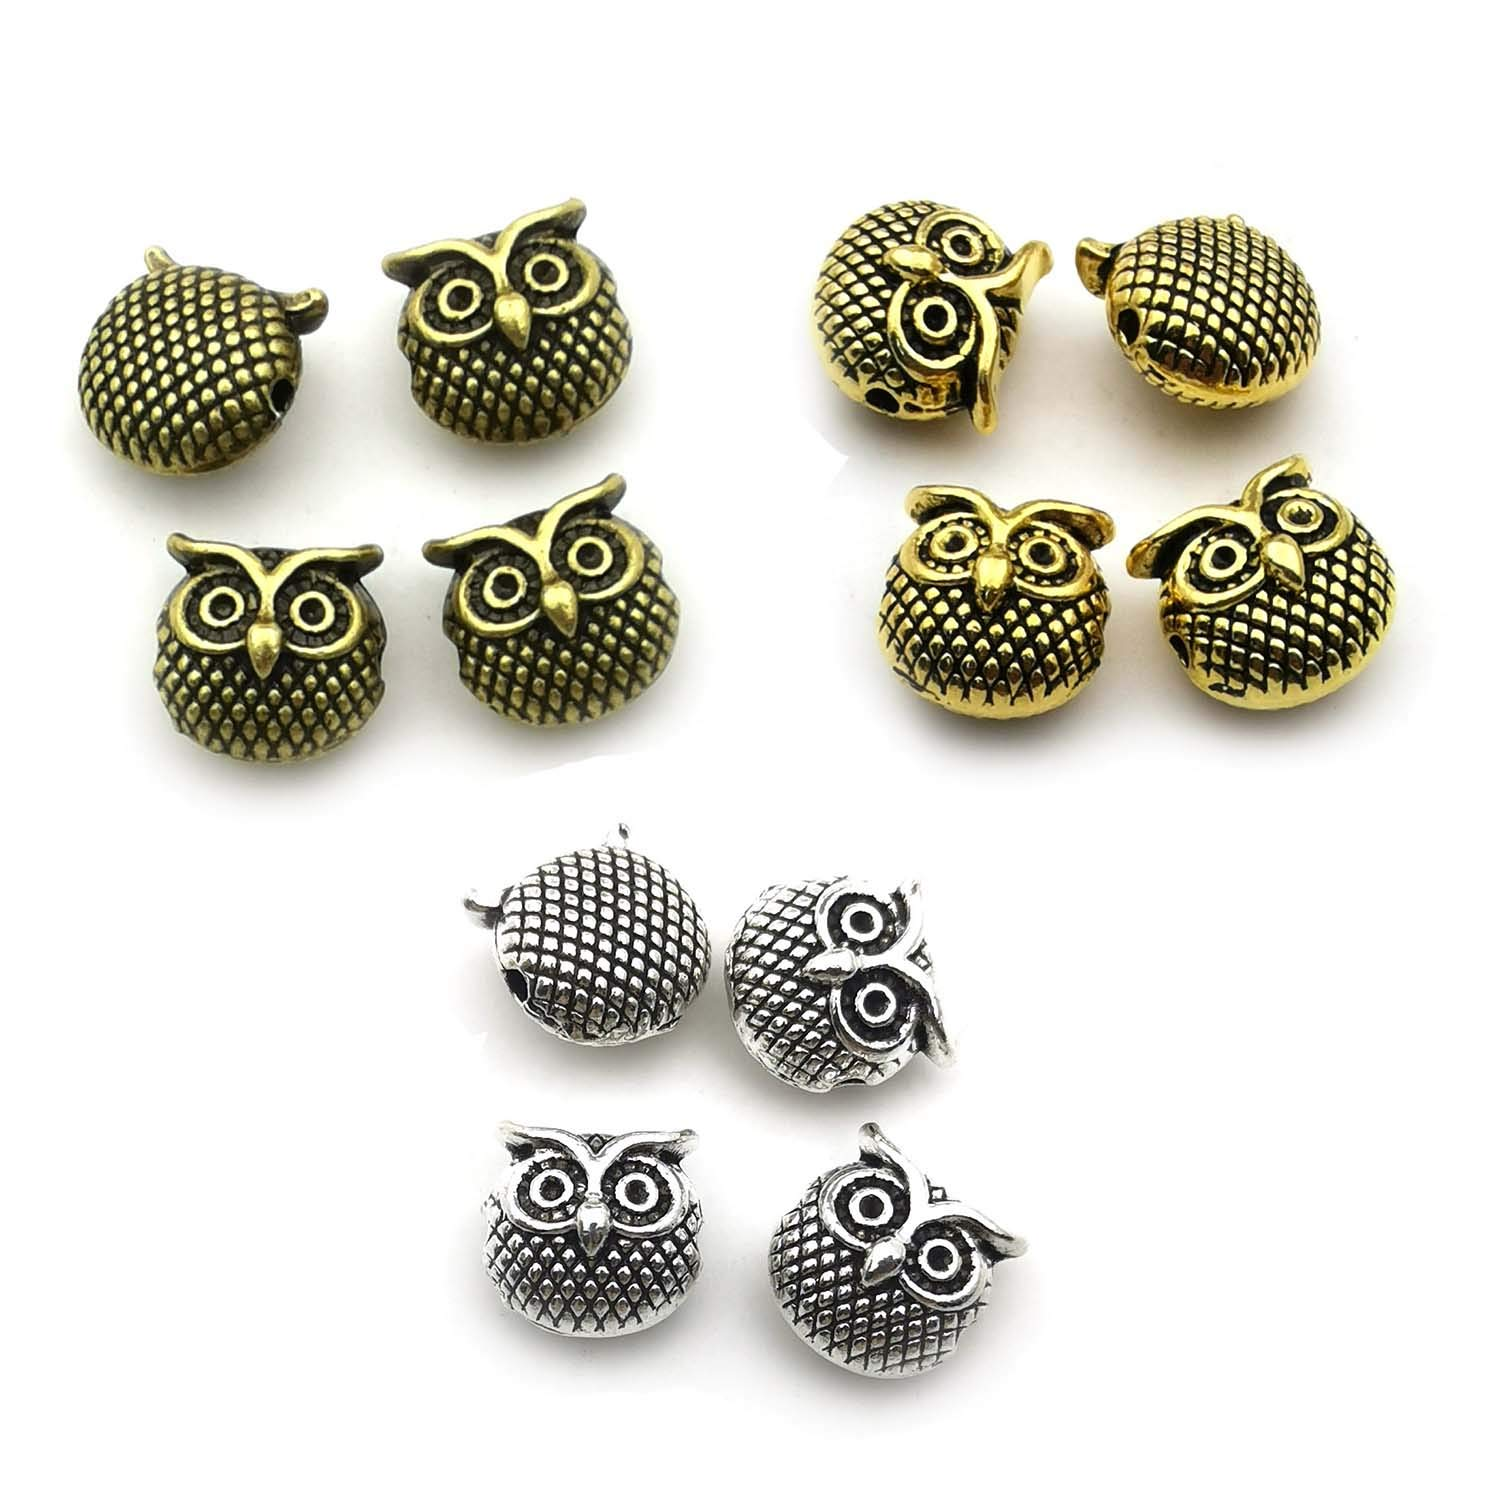 40Pcs//Set Mixed Vintage Owl Charms Alloy Pendants DIY Handmade Jewelry Findin X